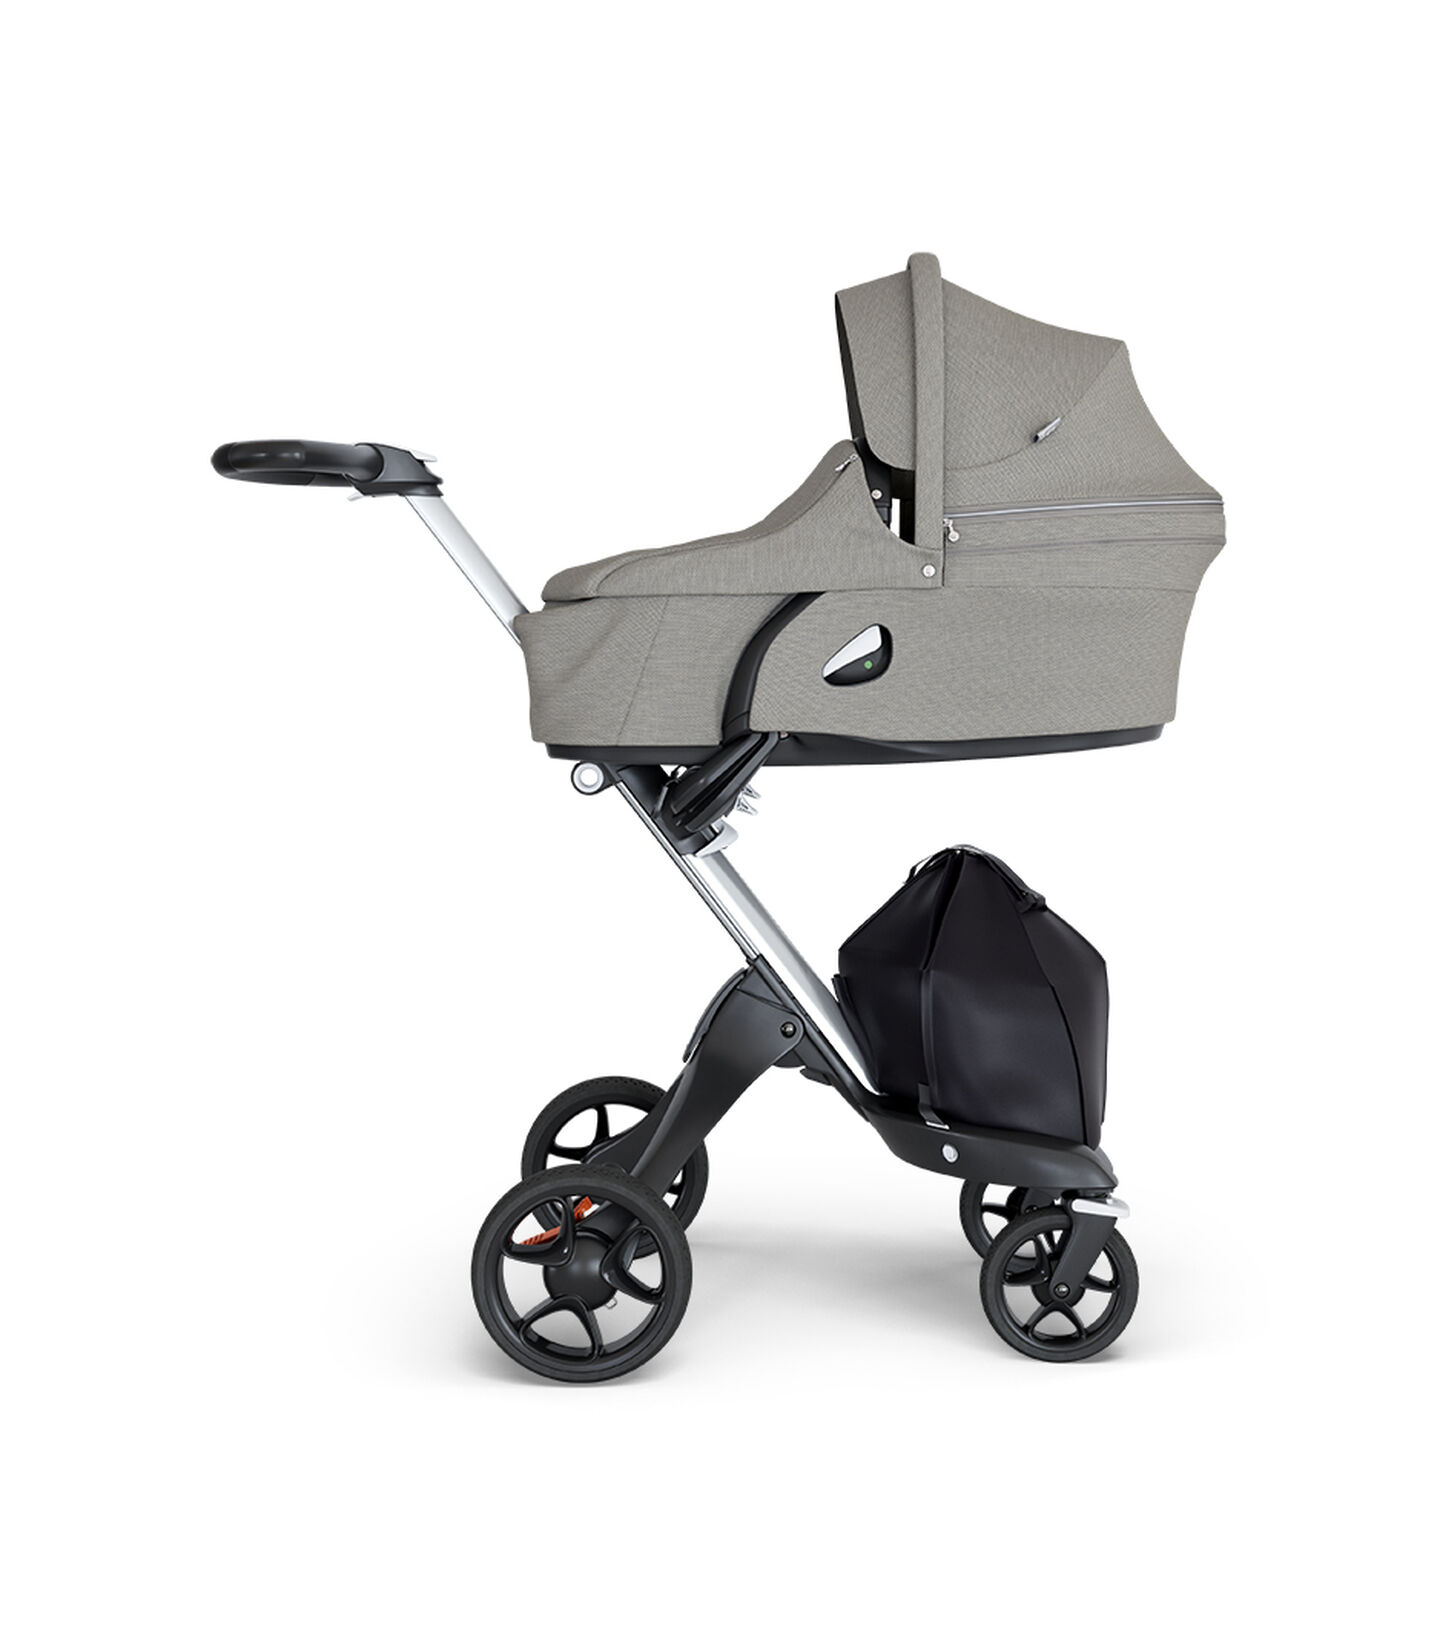 Stokke® Xplory® wtih Silver Chassis and Leatherette Black handle. Stokke® Stroller Seat Carry Cot Brushed Grey.